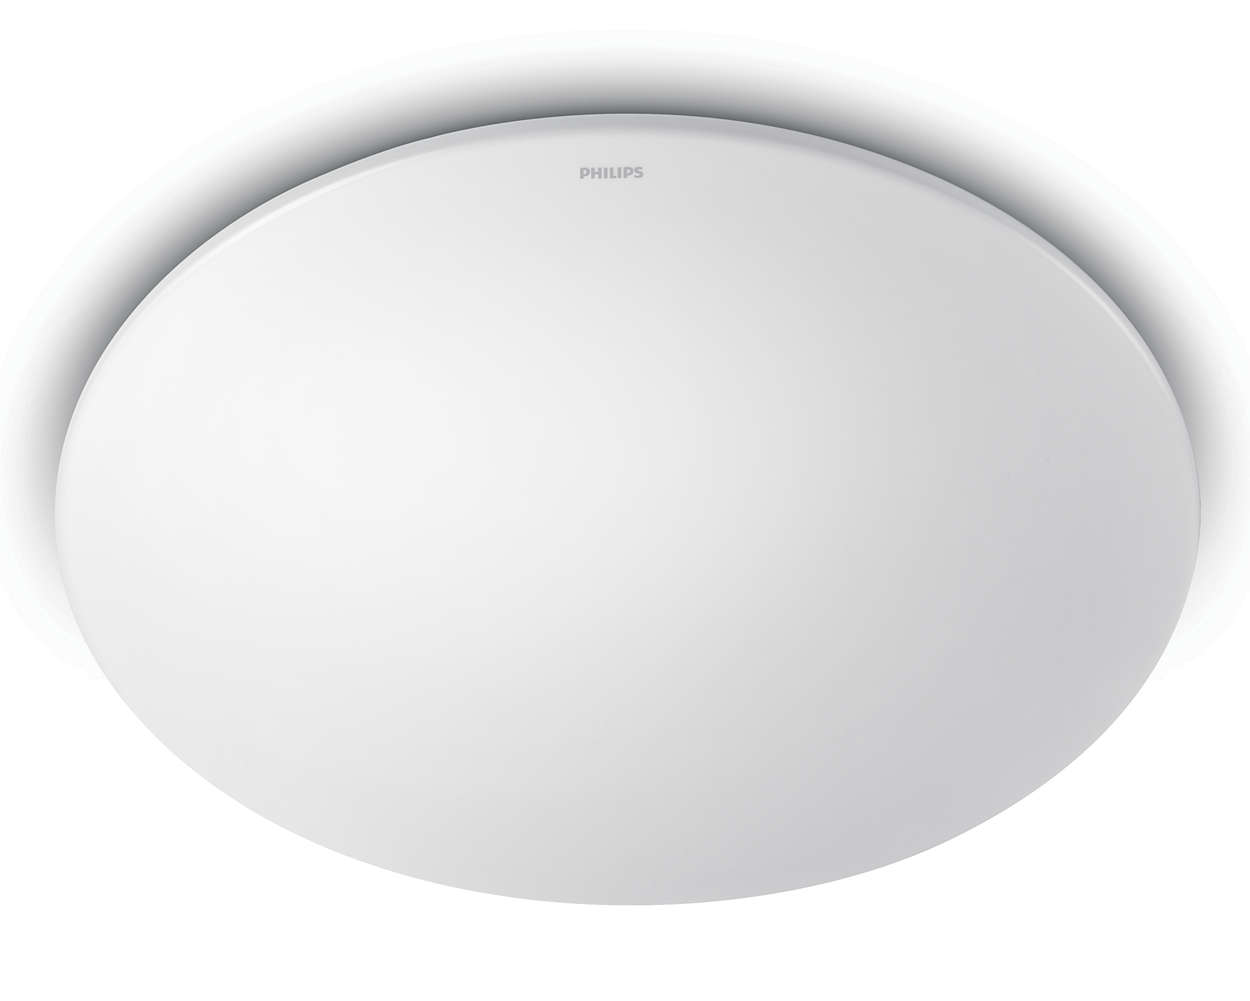 Ceiling Light 333653166 Philips Electrical Ceilling Wont Switch Off After A New Installation Essential Lighting For Bright Home